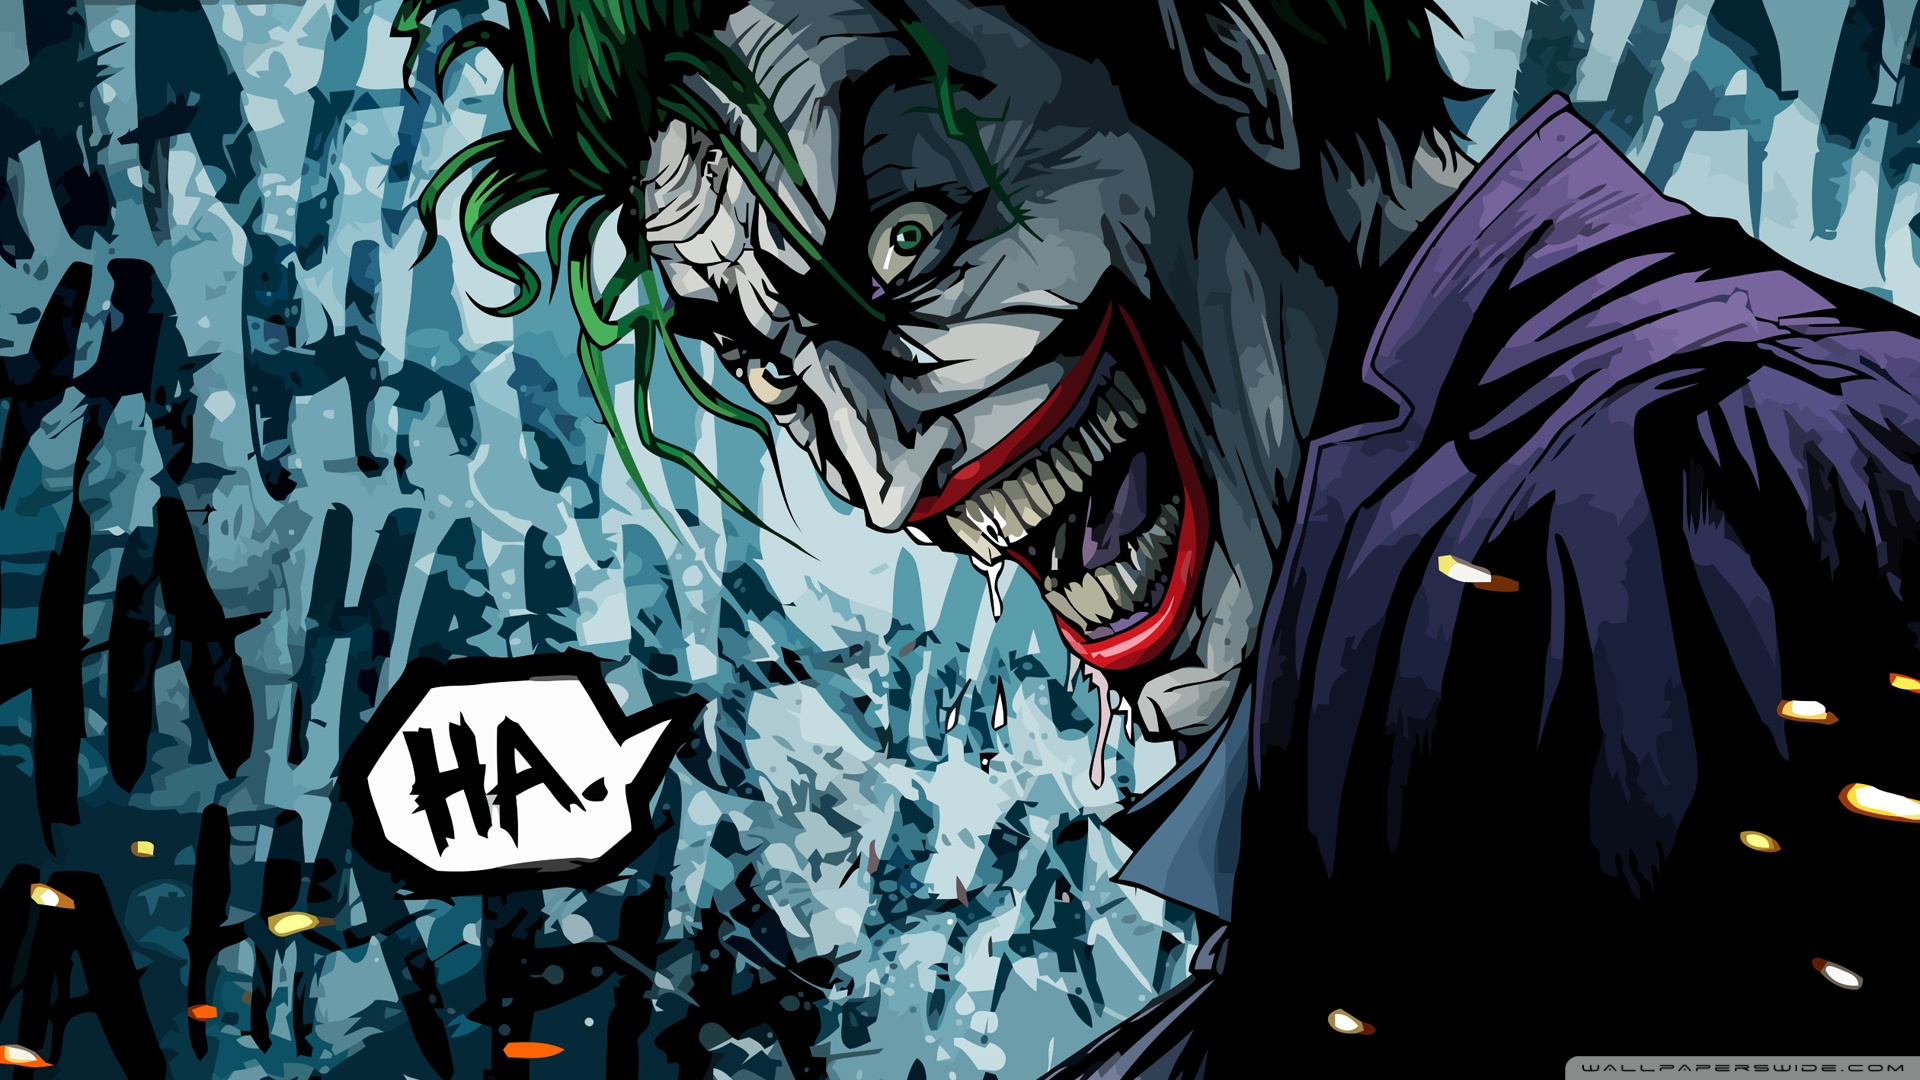 the_joker_illustration-wallpaper-1920x1080.jpg